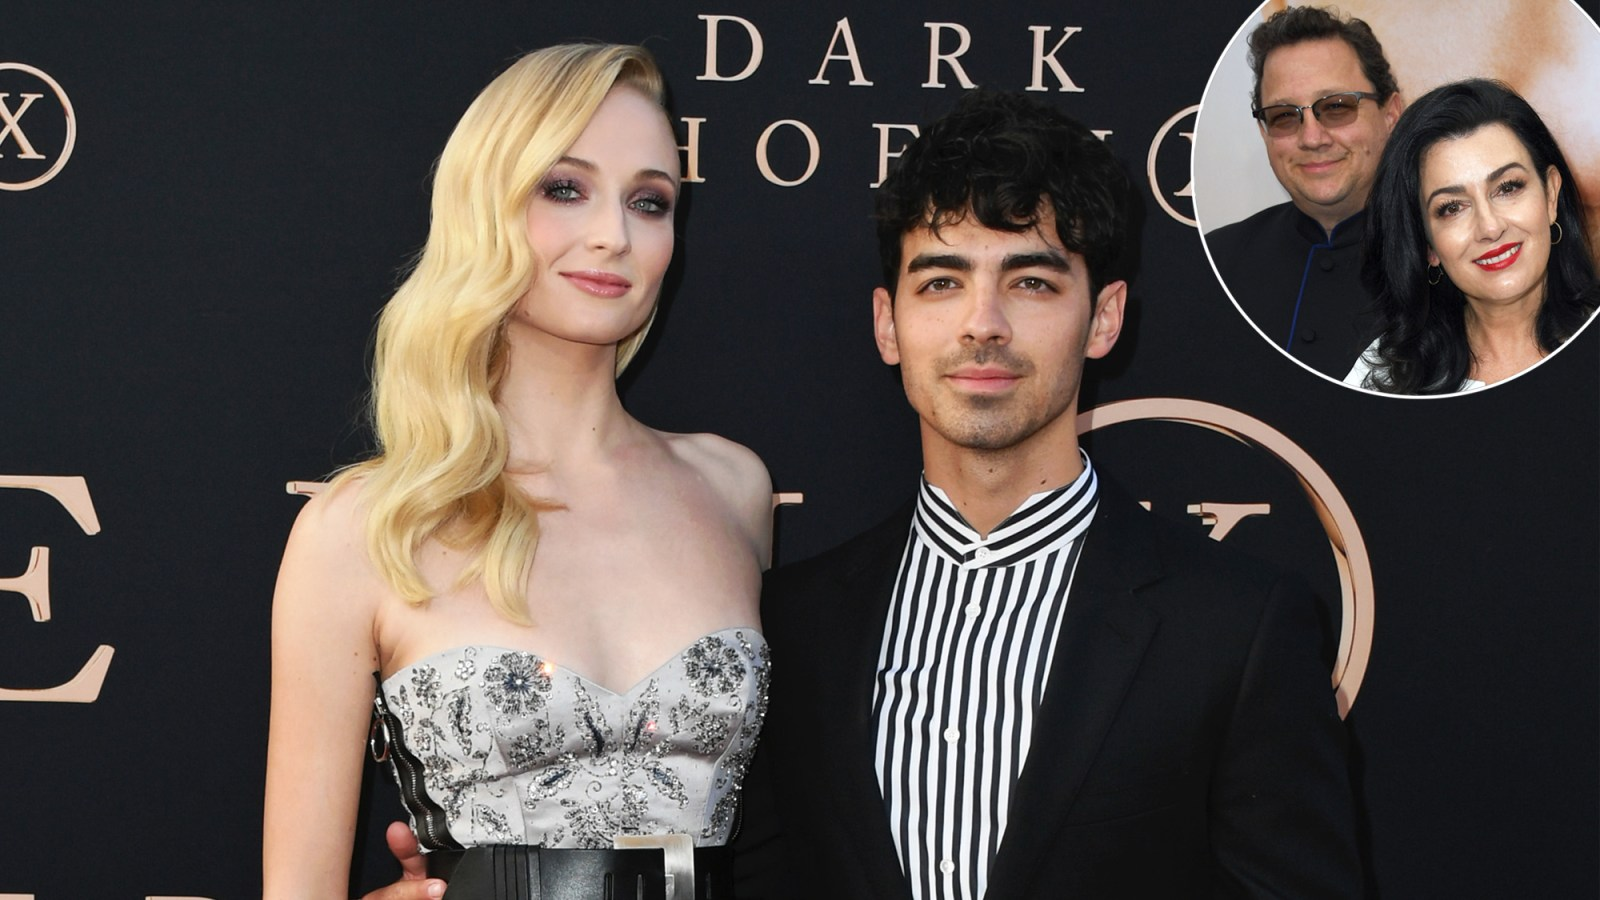 Joe Jonas Parents Learned About His Wedding To Sophie Turner Online